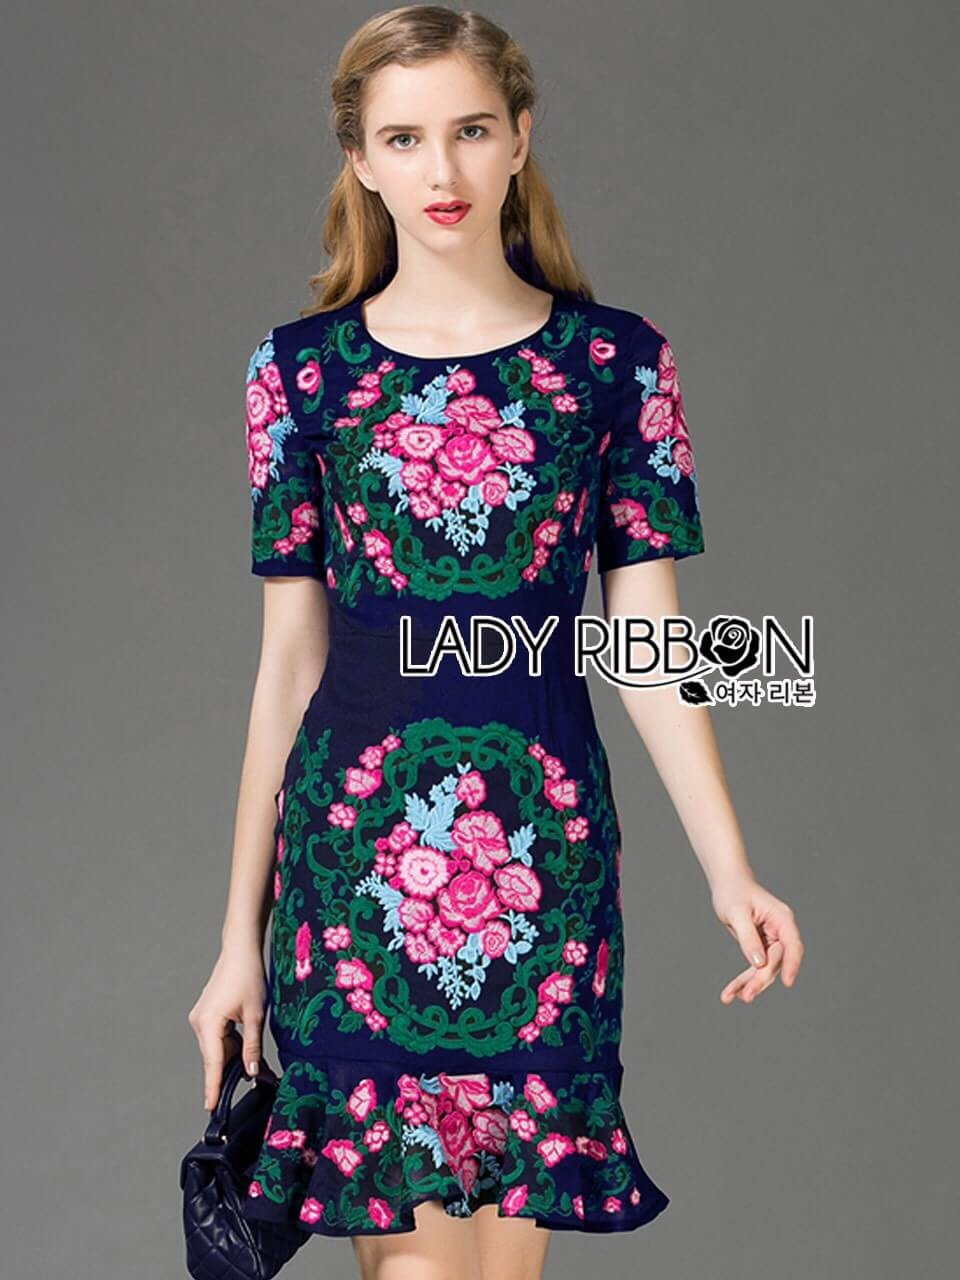 &#x1F380 Lady Ribbon's Made &#x1F380 Lady Daphne Colourful Flower Embroidered Ruffle Silk Dress